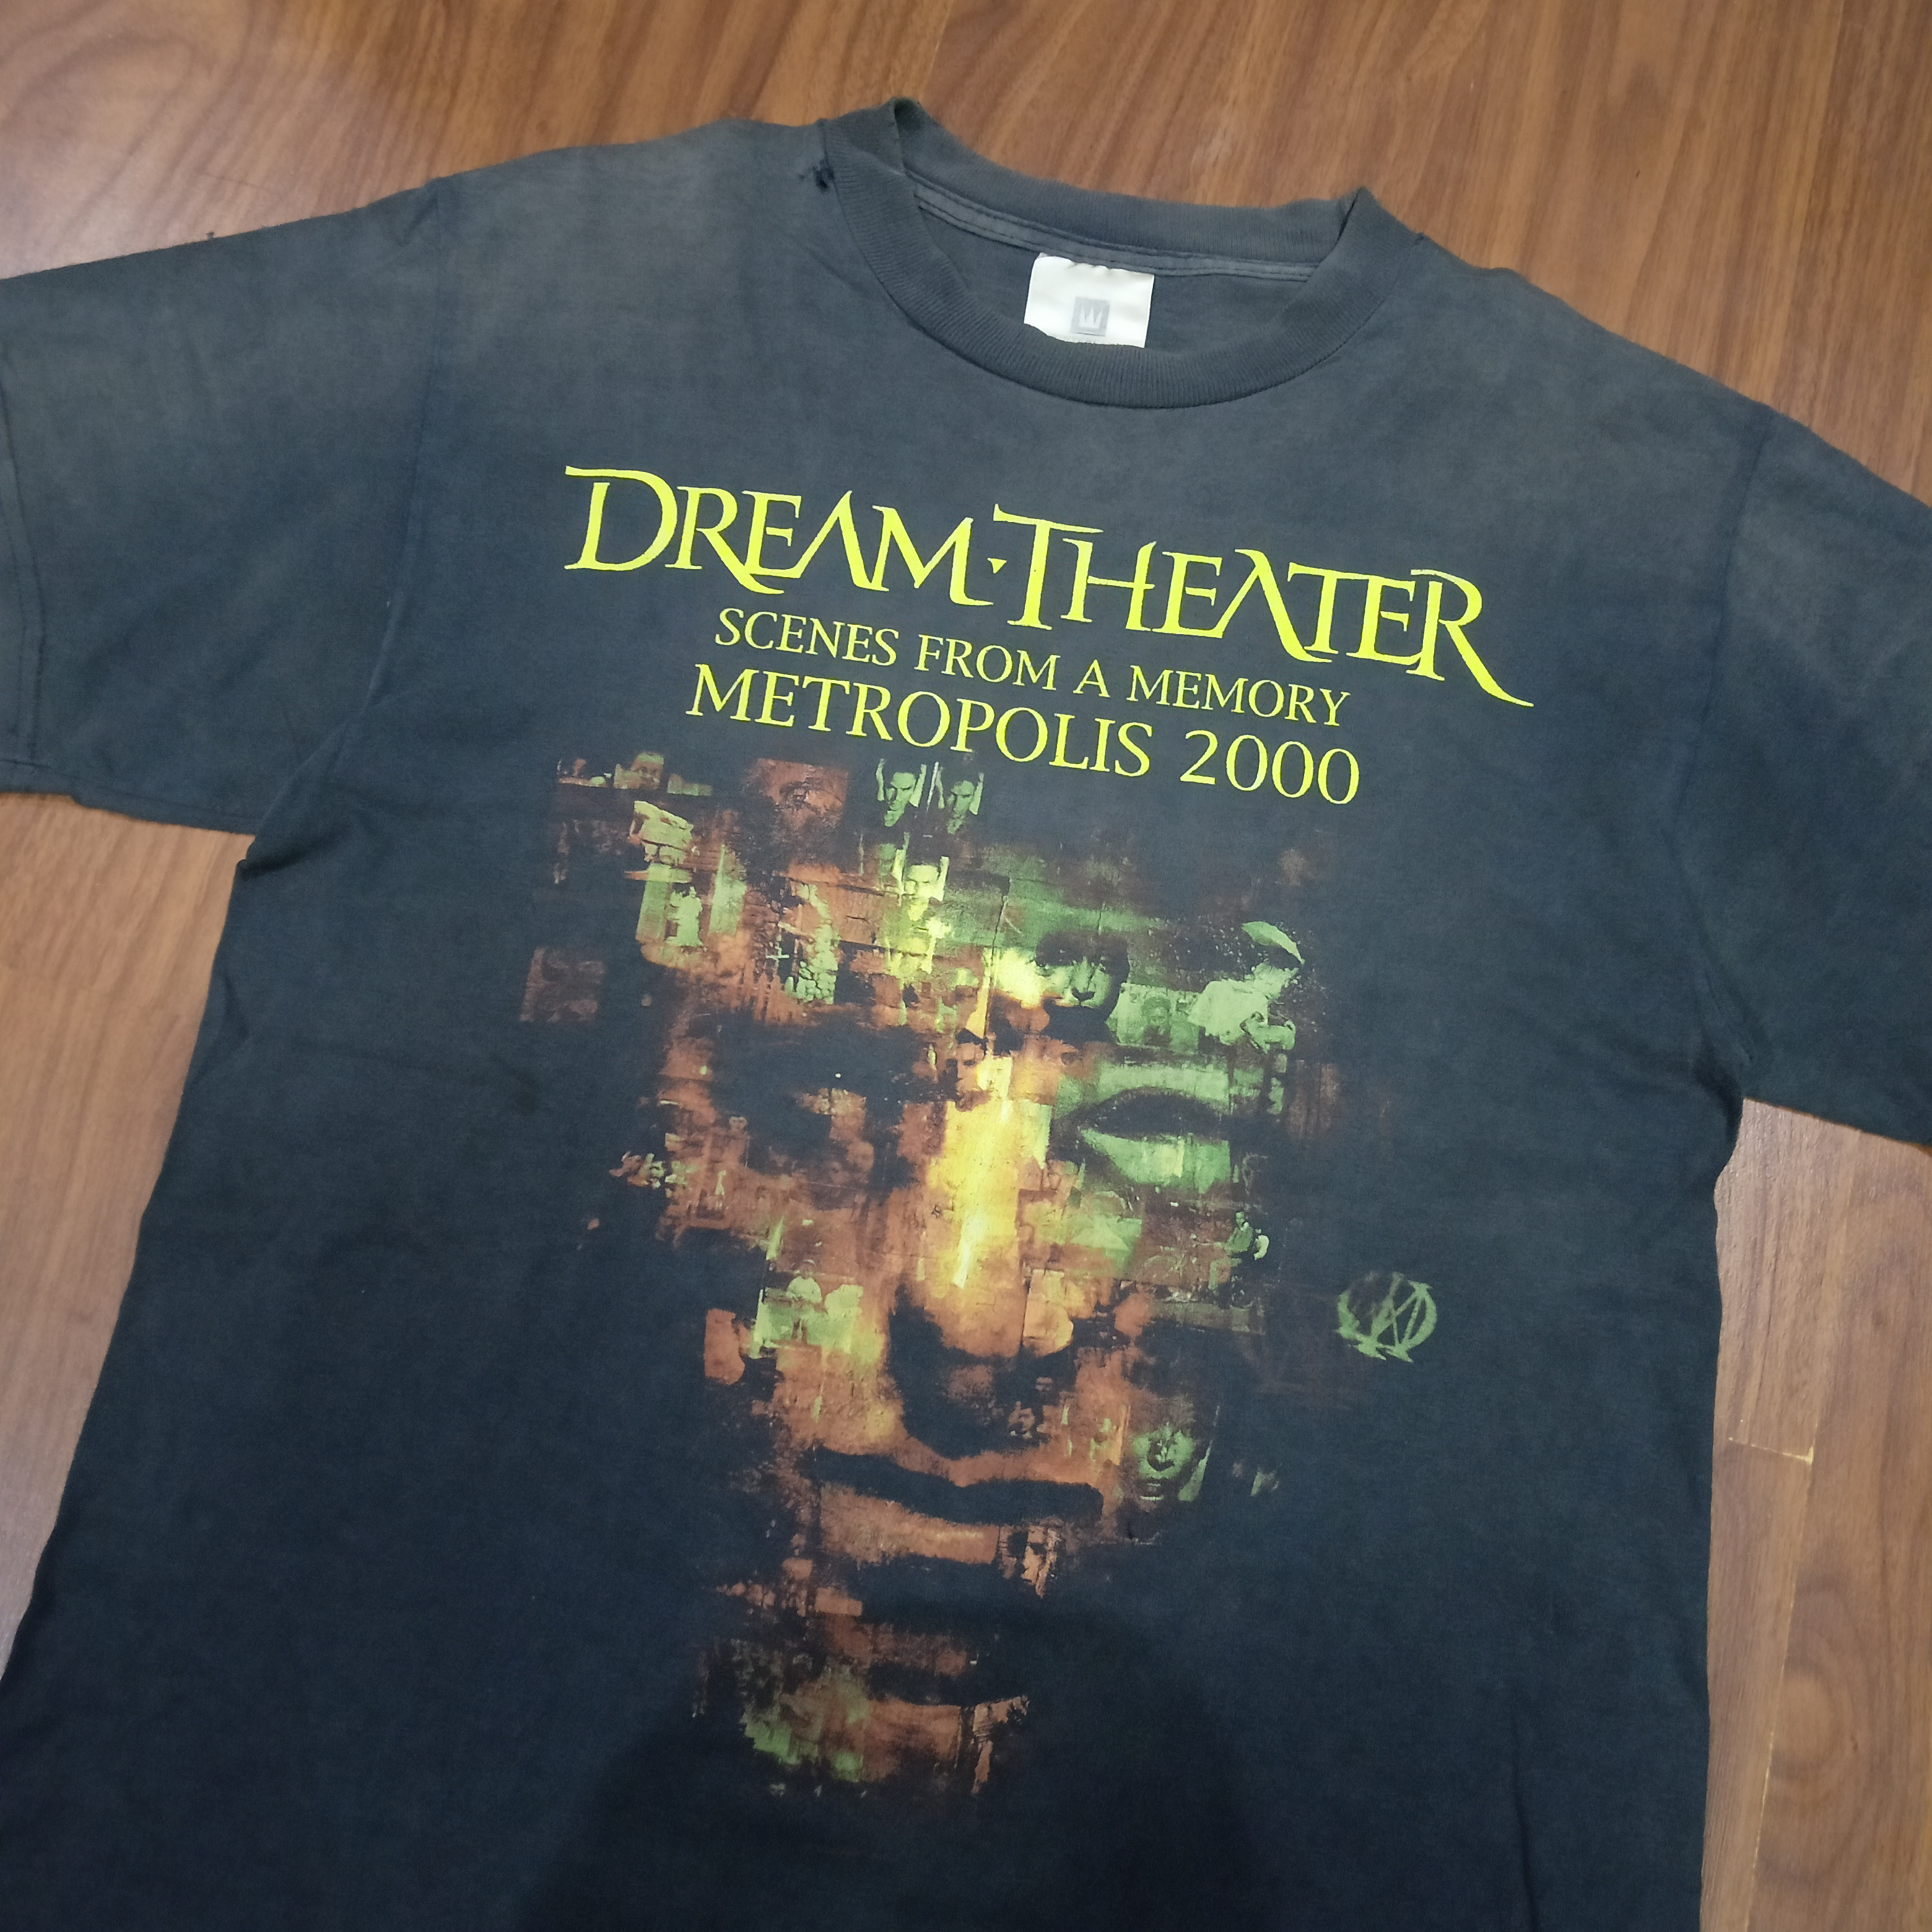 Vintage Dream Theater Scene From A Memory Metropolis 2000 T Shirt